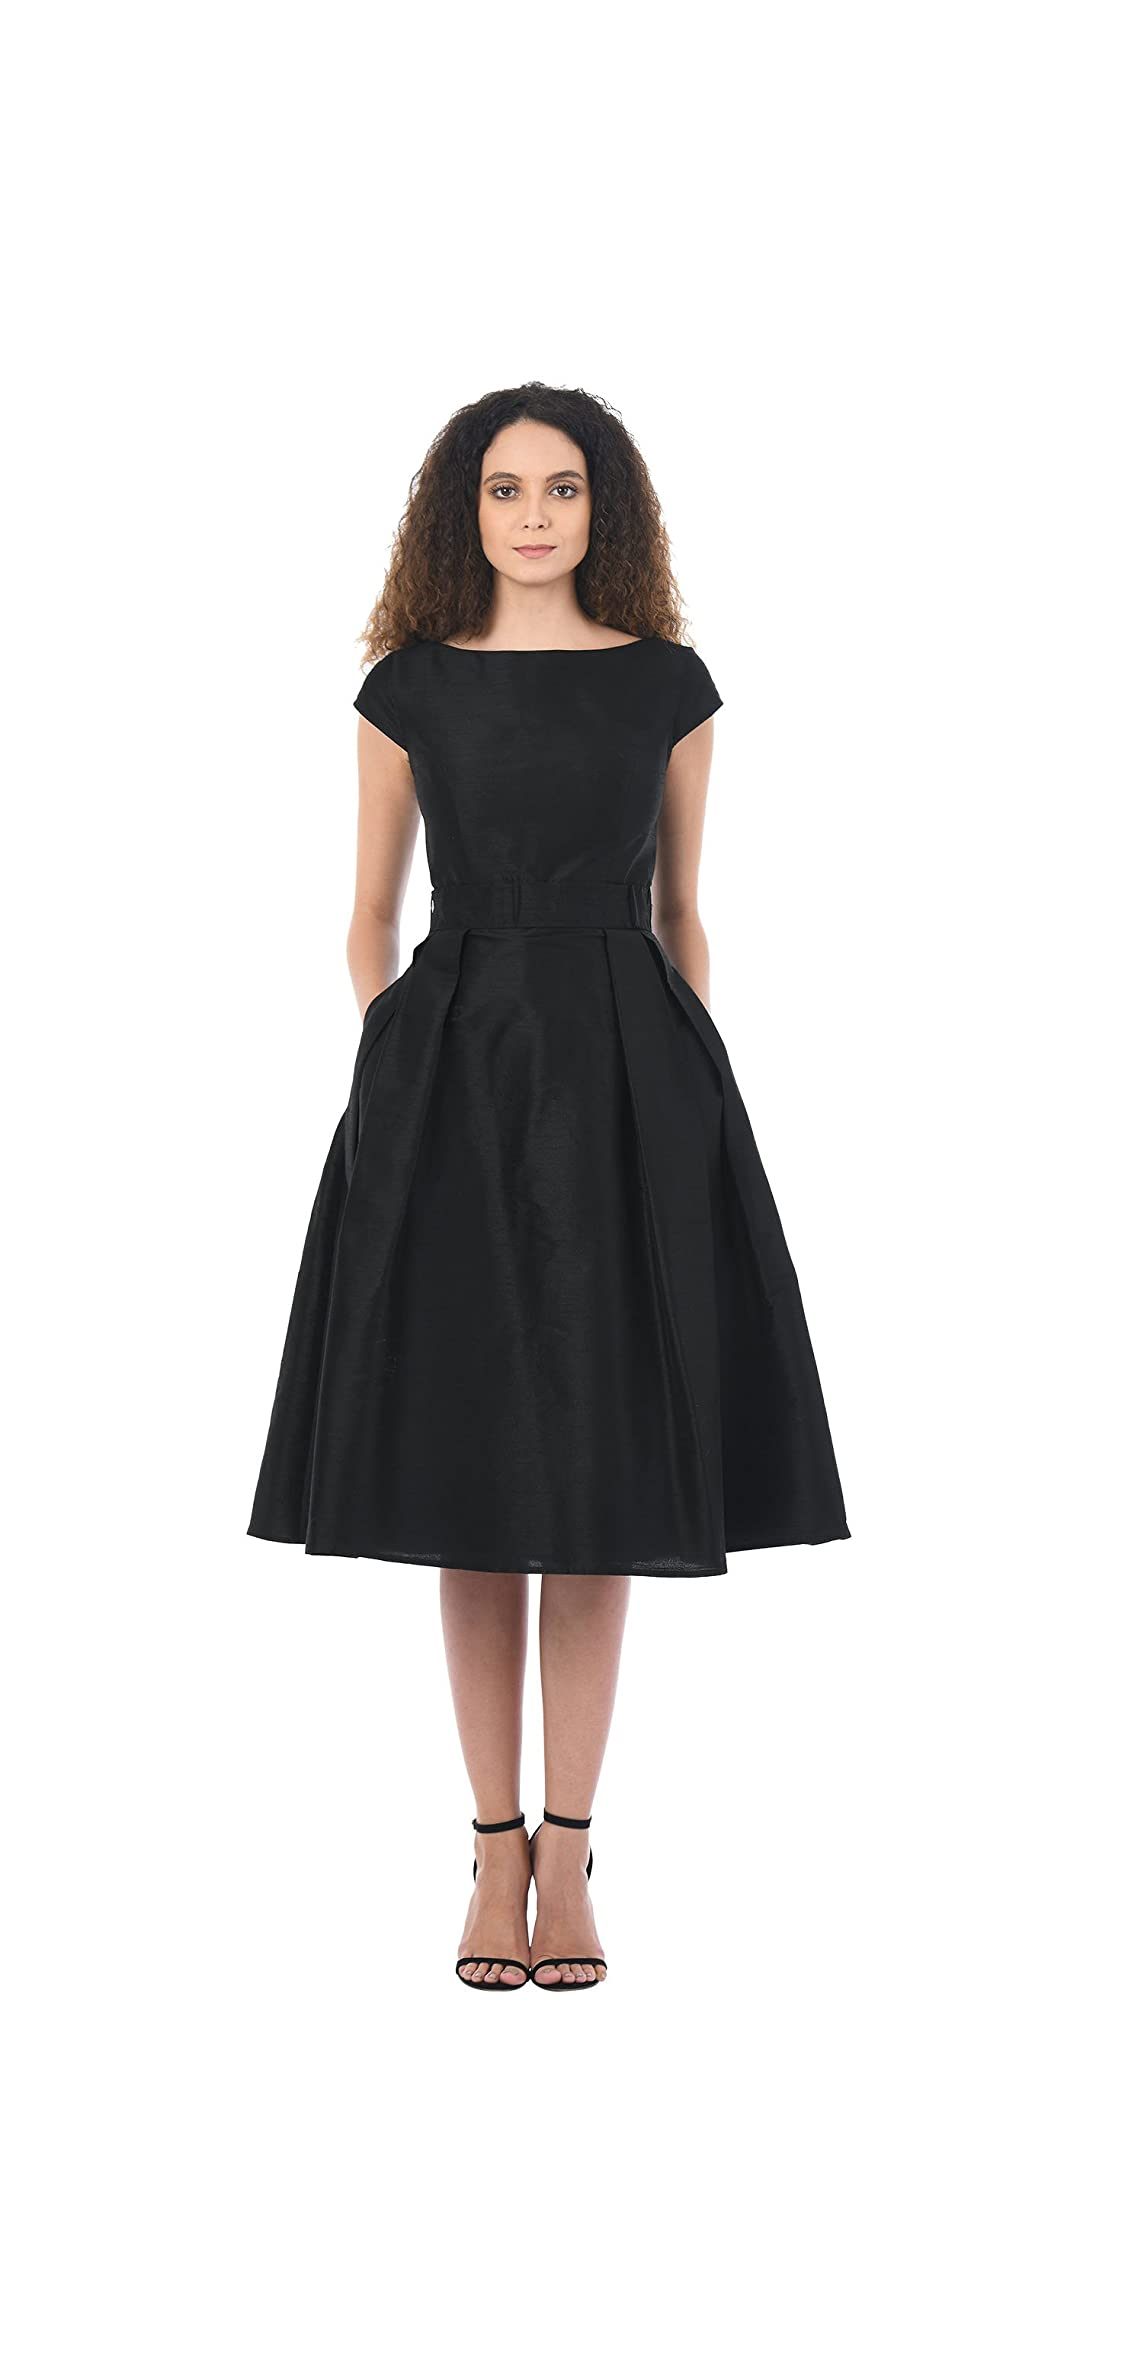 Fx Quincy Dress - Customizable Neckline, Sleeve  Length